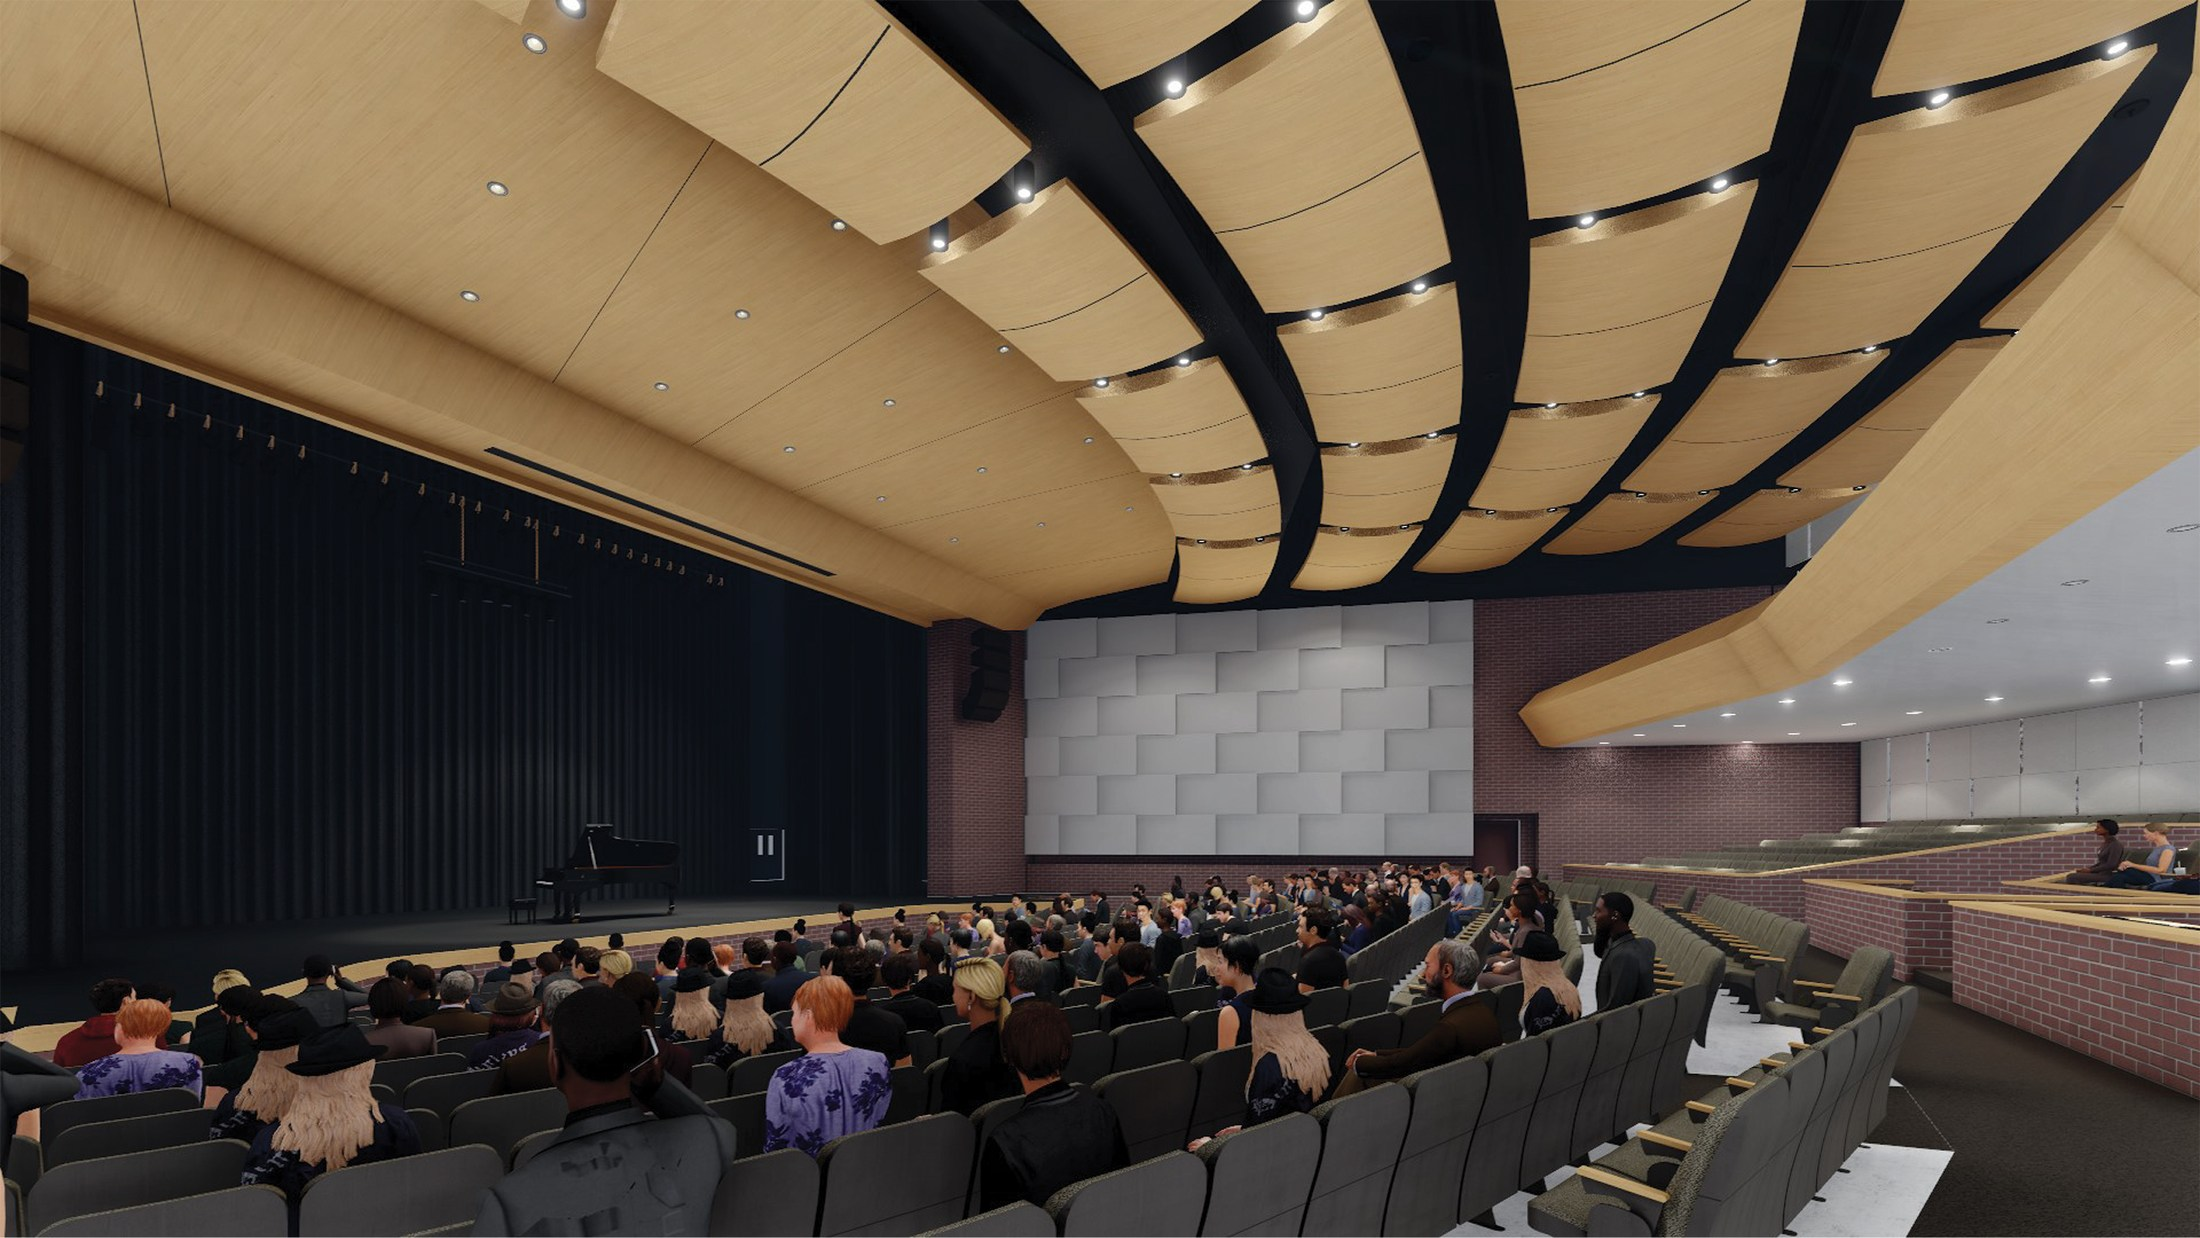 Interior render of theater of Auditorium